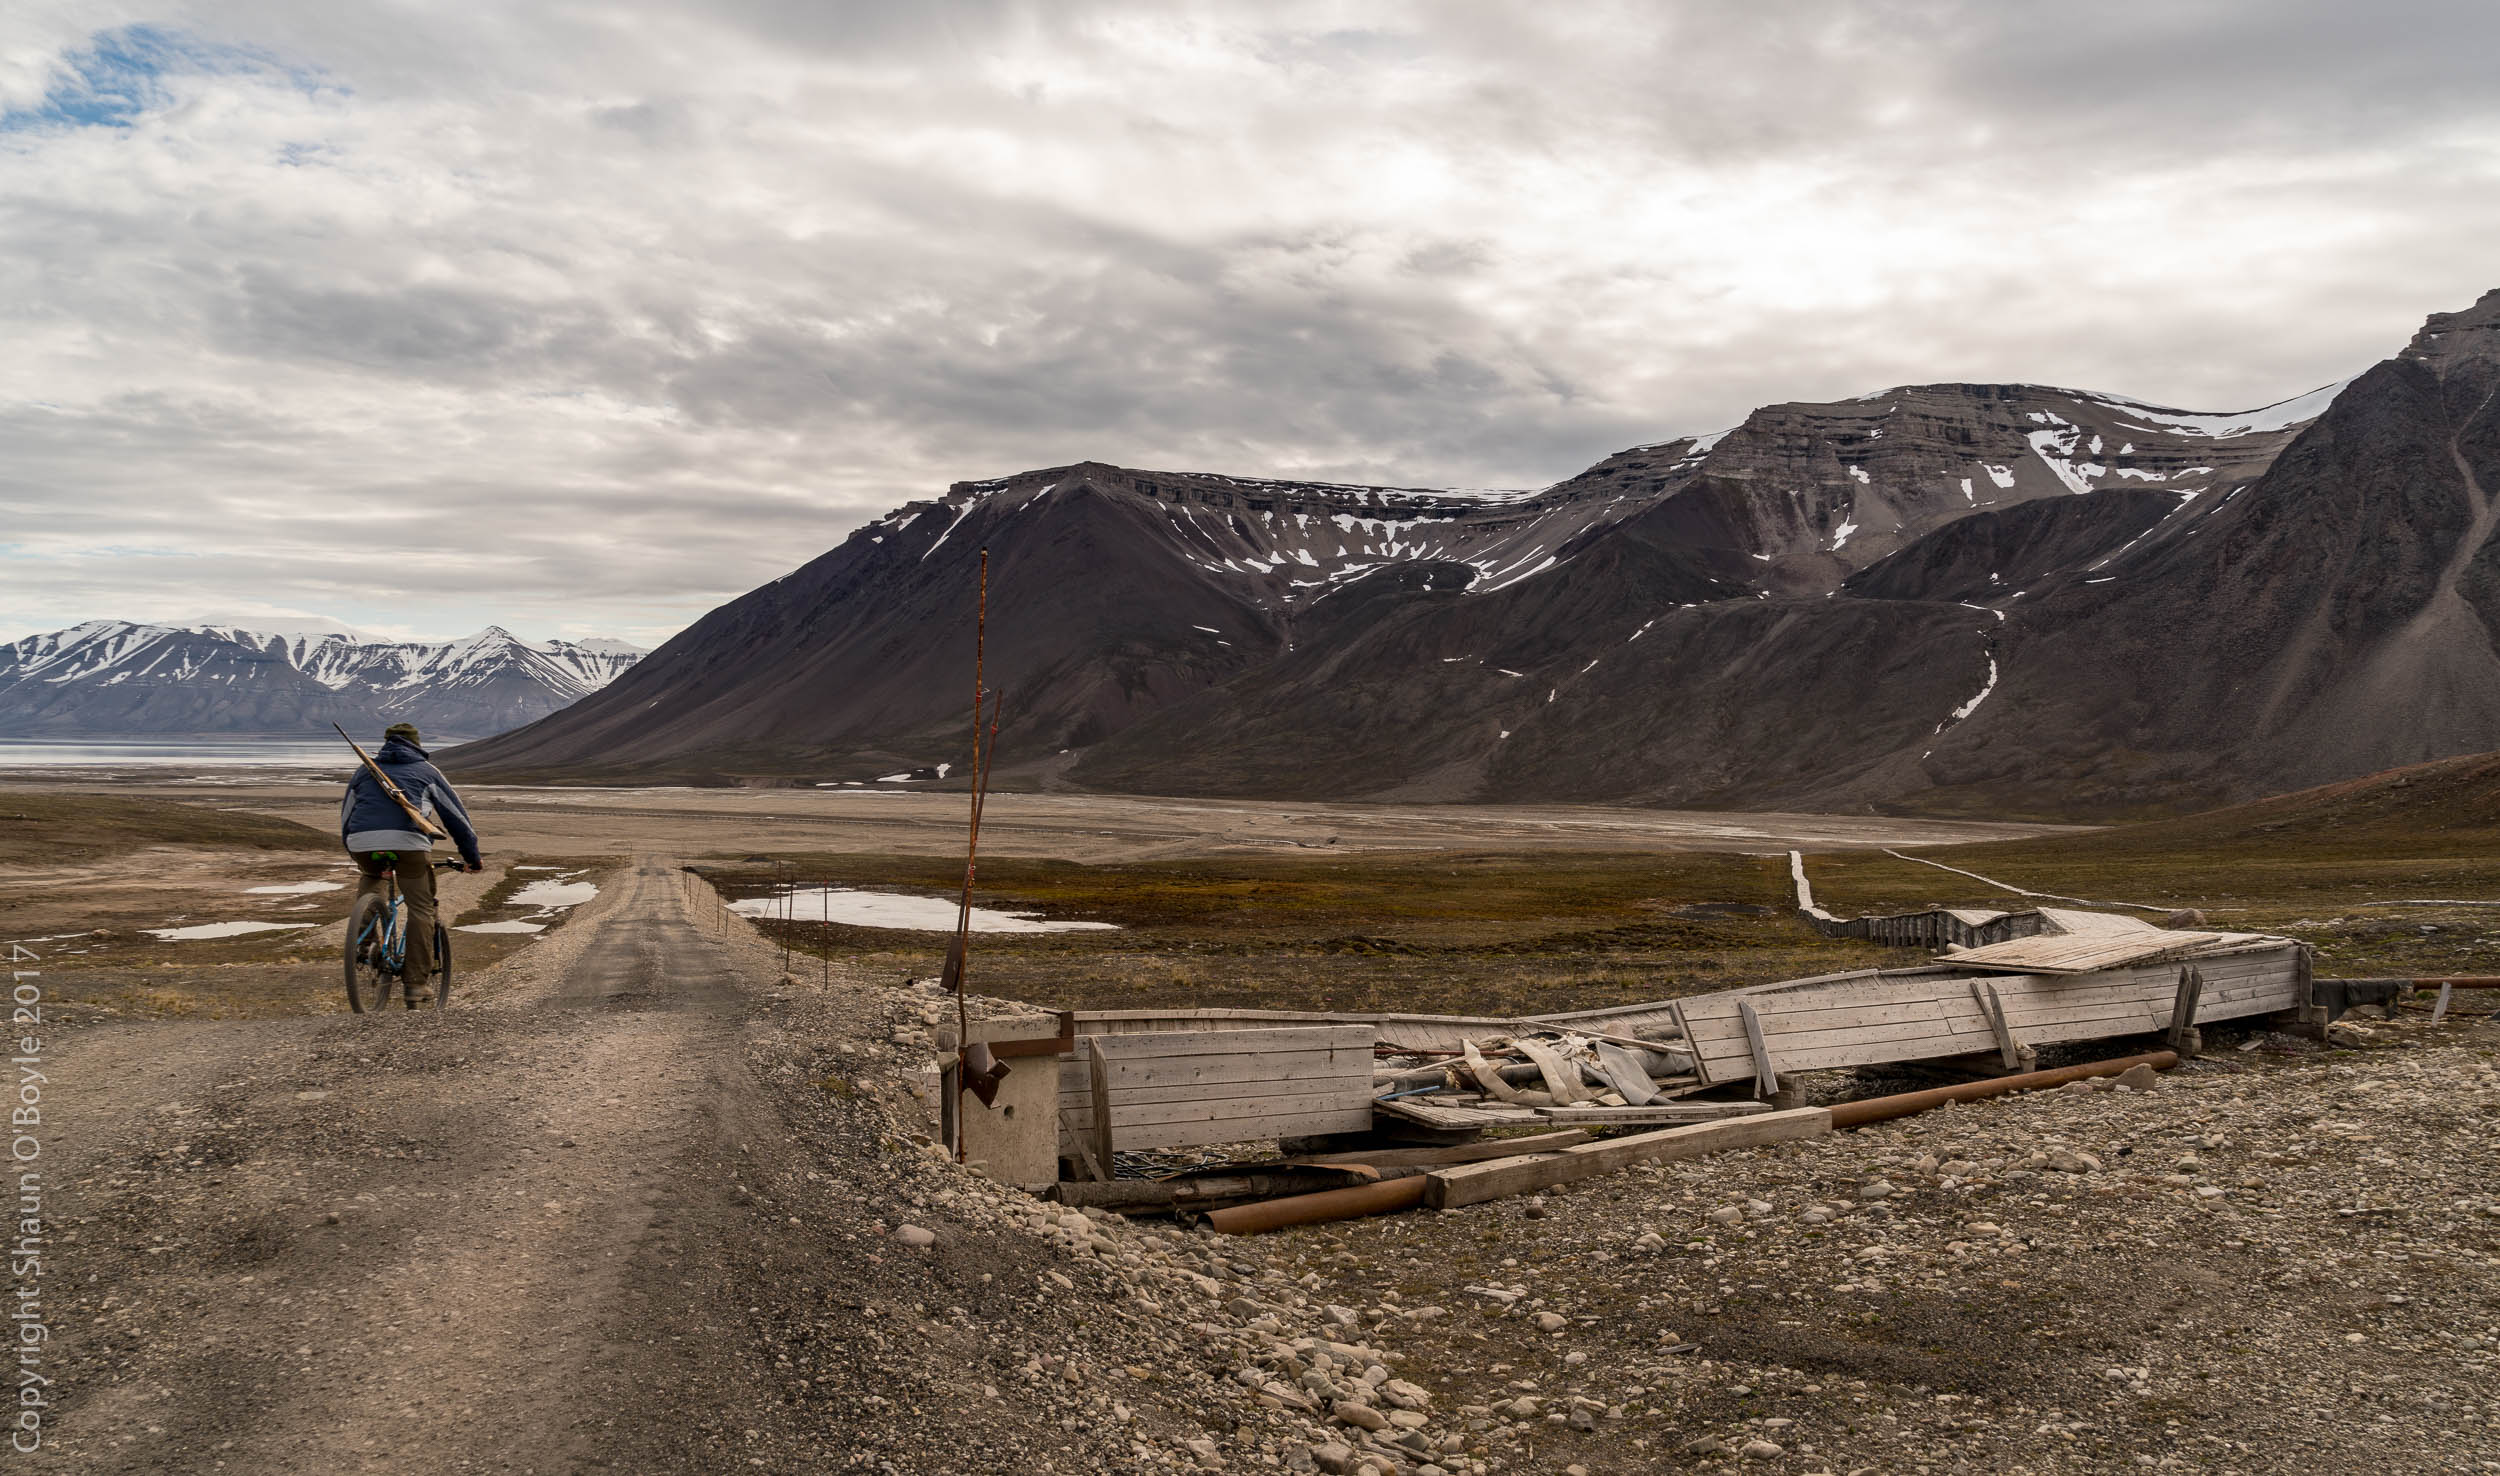 Cycling old mining roads, Pyramiden, Svalbard